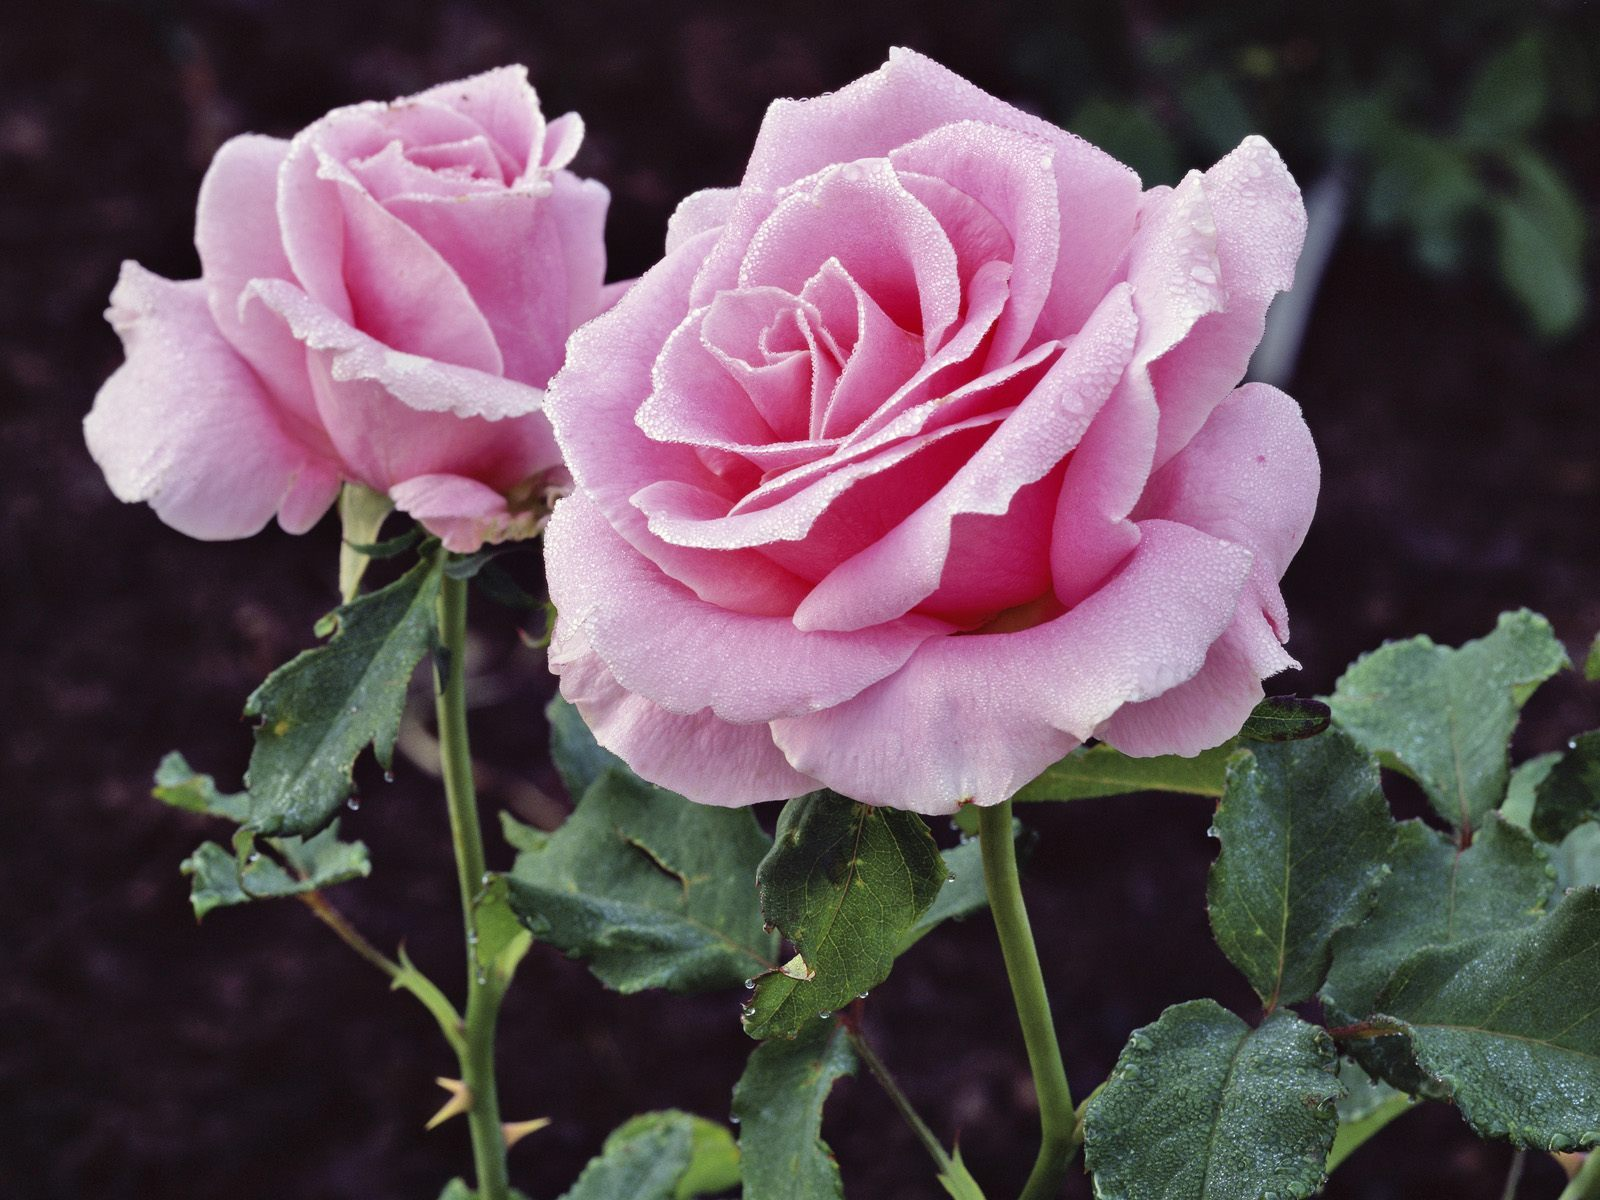 beautiful pink rose flowers images. most beautiful pink roses hd